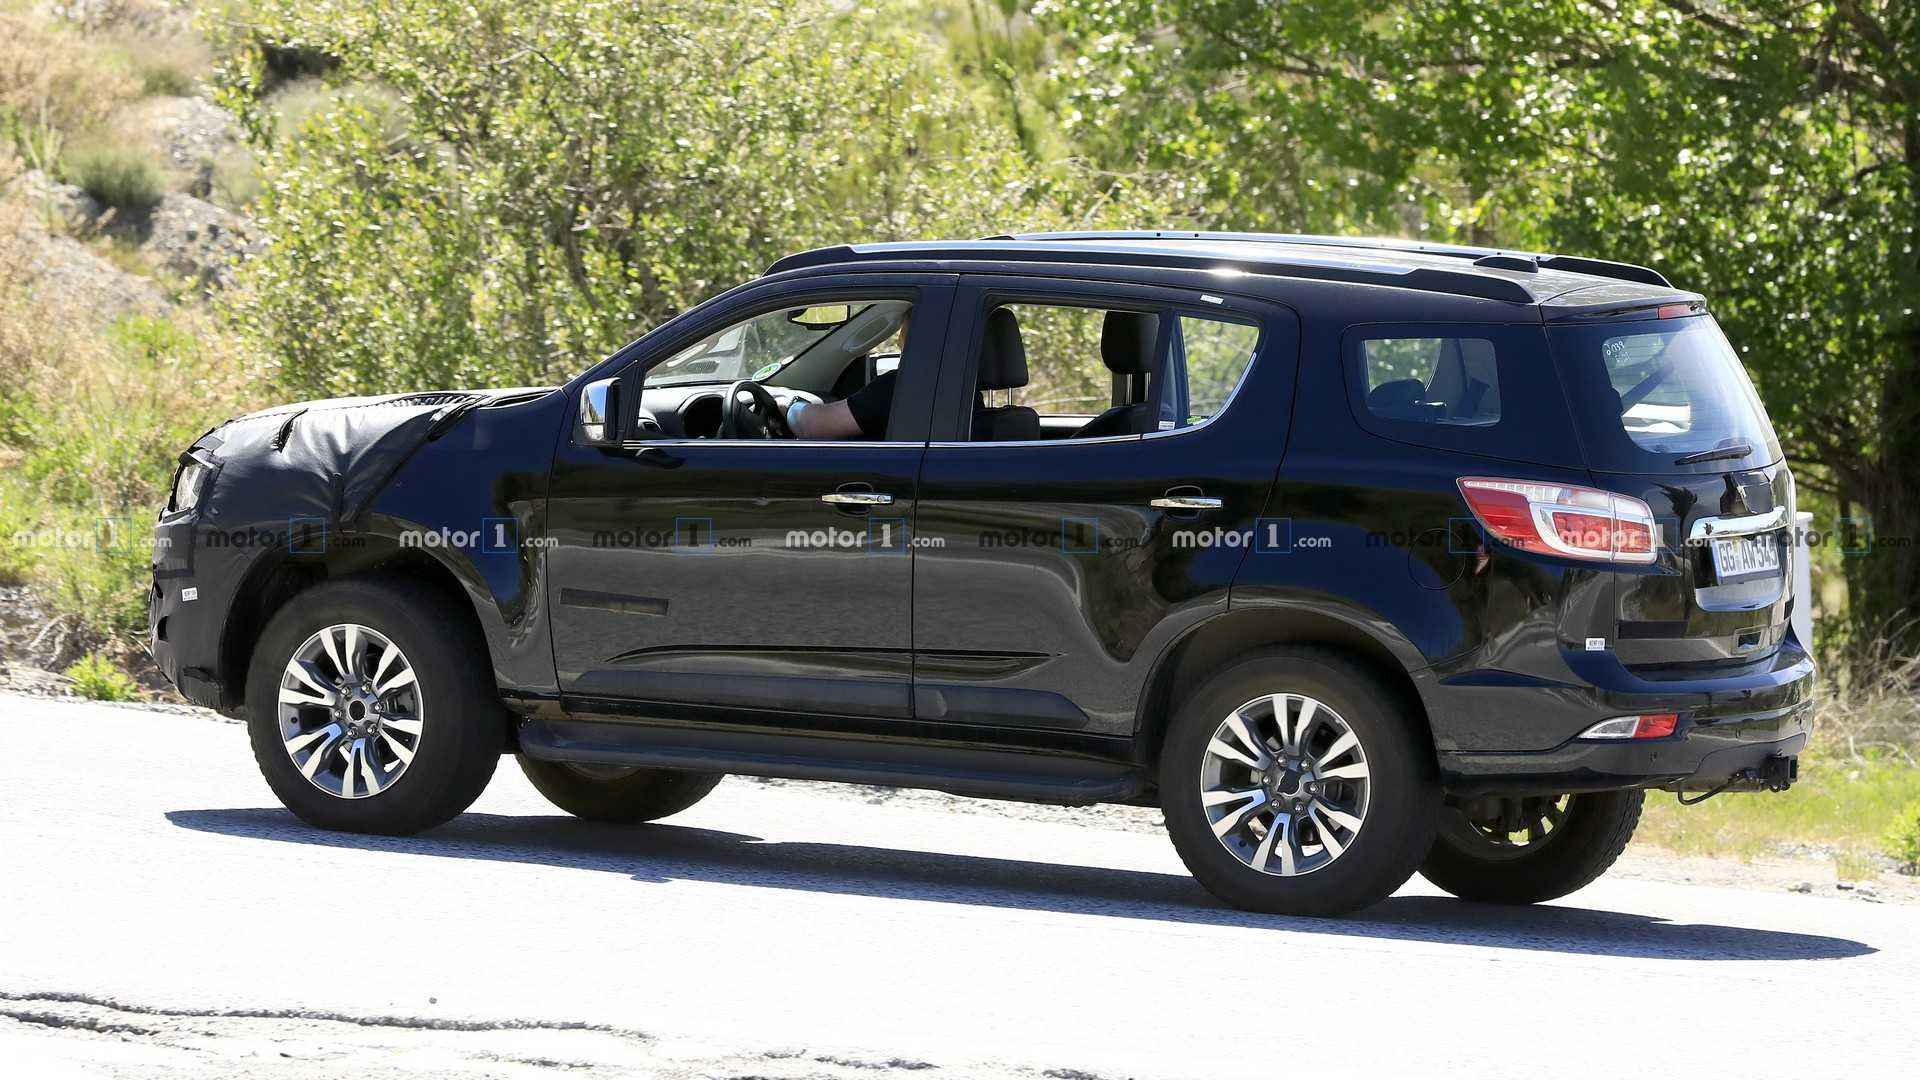 """2021 Chevrolet Trailblazer is the """"baby Blazer"""" to slot between Trax and Equinox   2019 Chevy ..."""